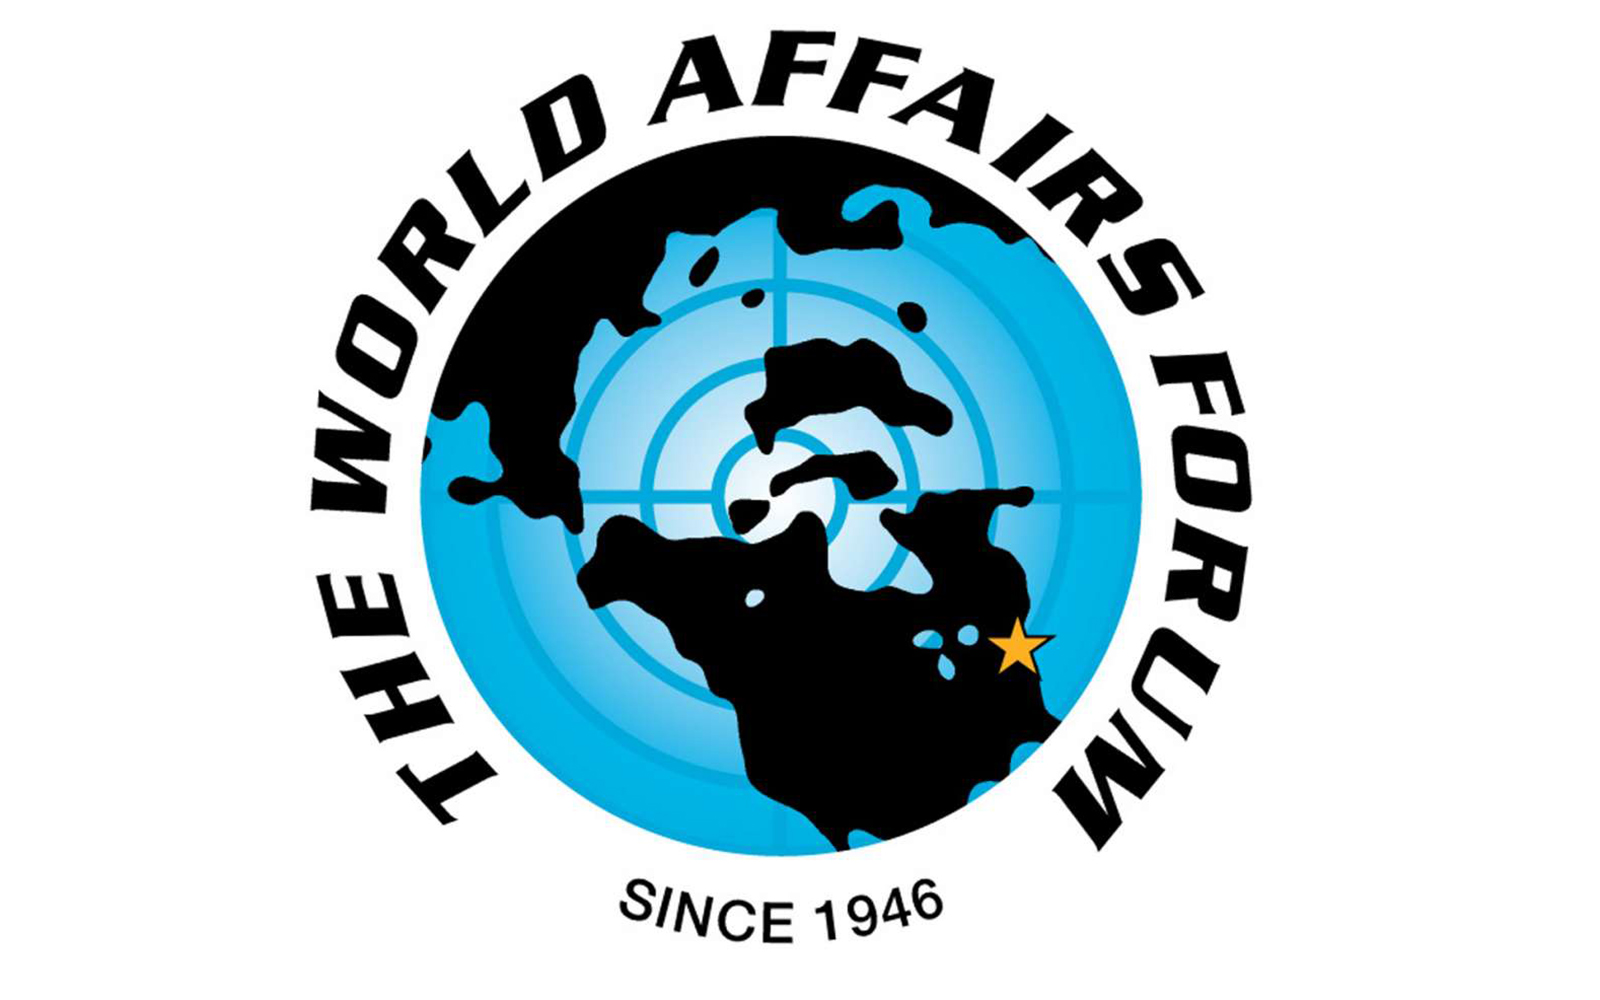 The World Affairs Forum | Stamford